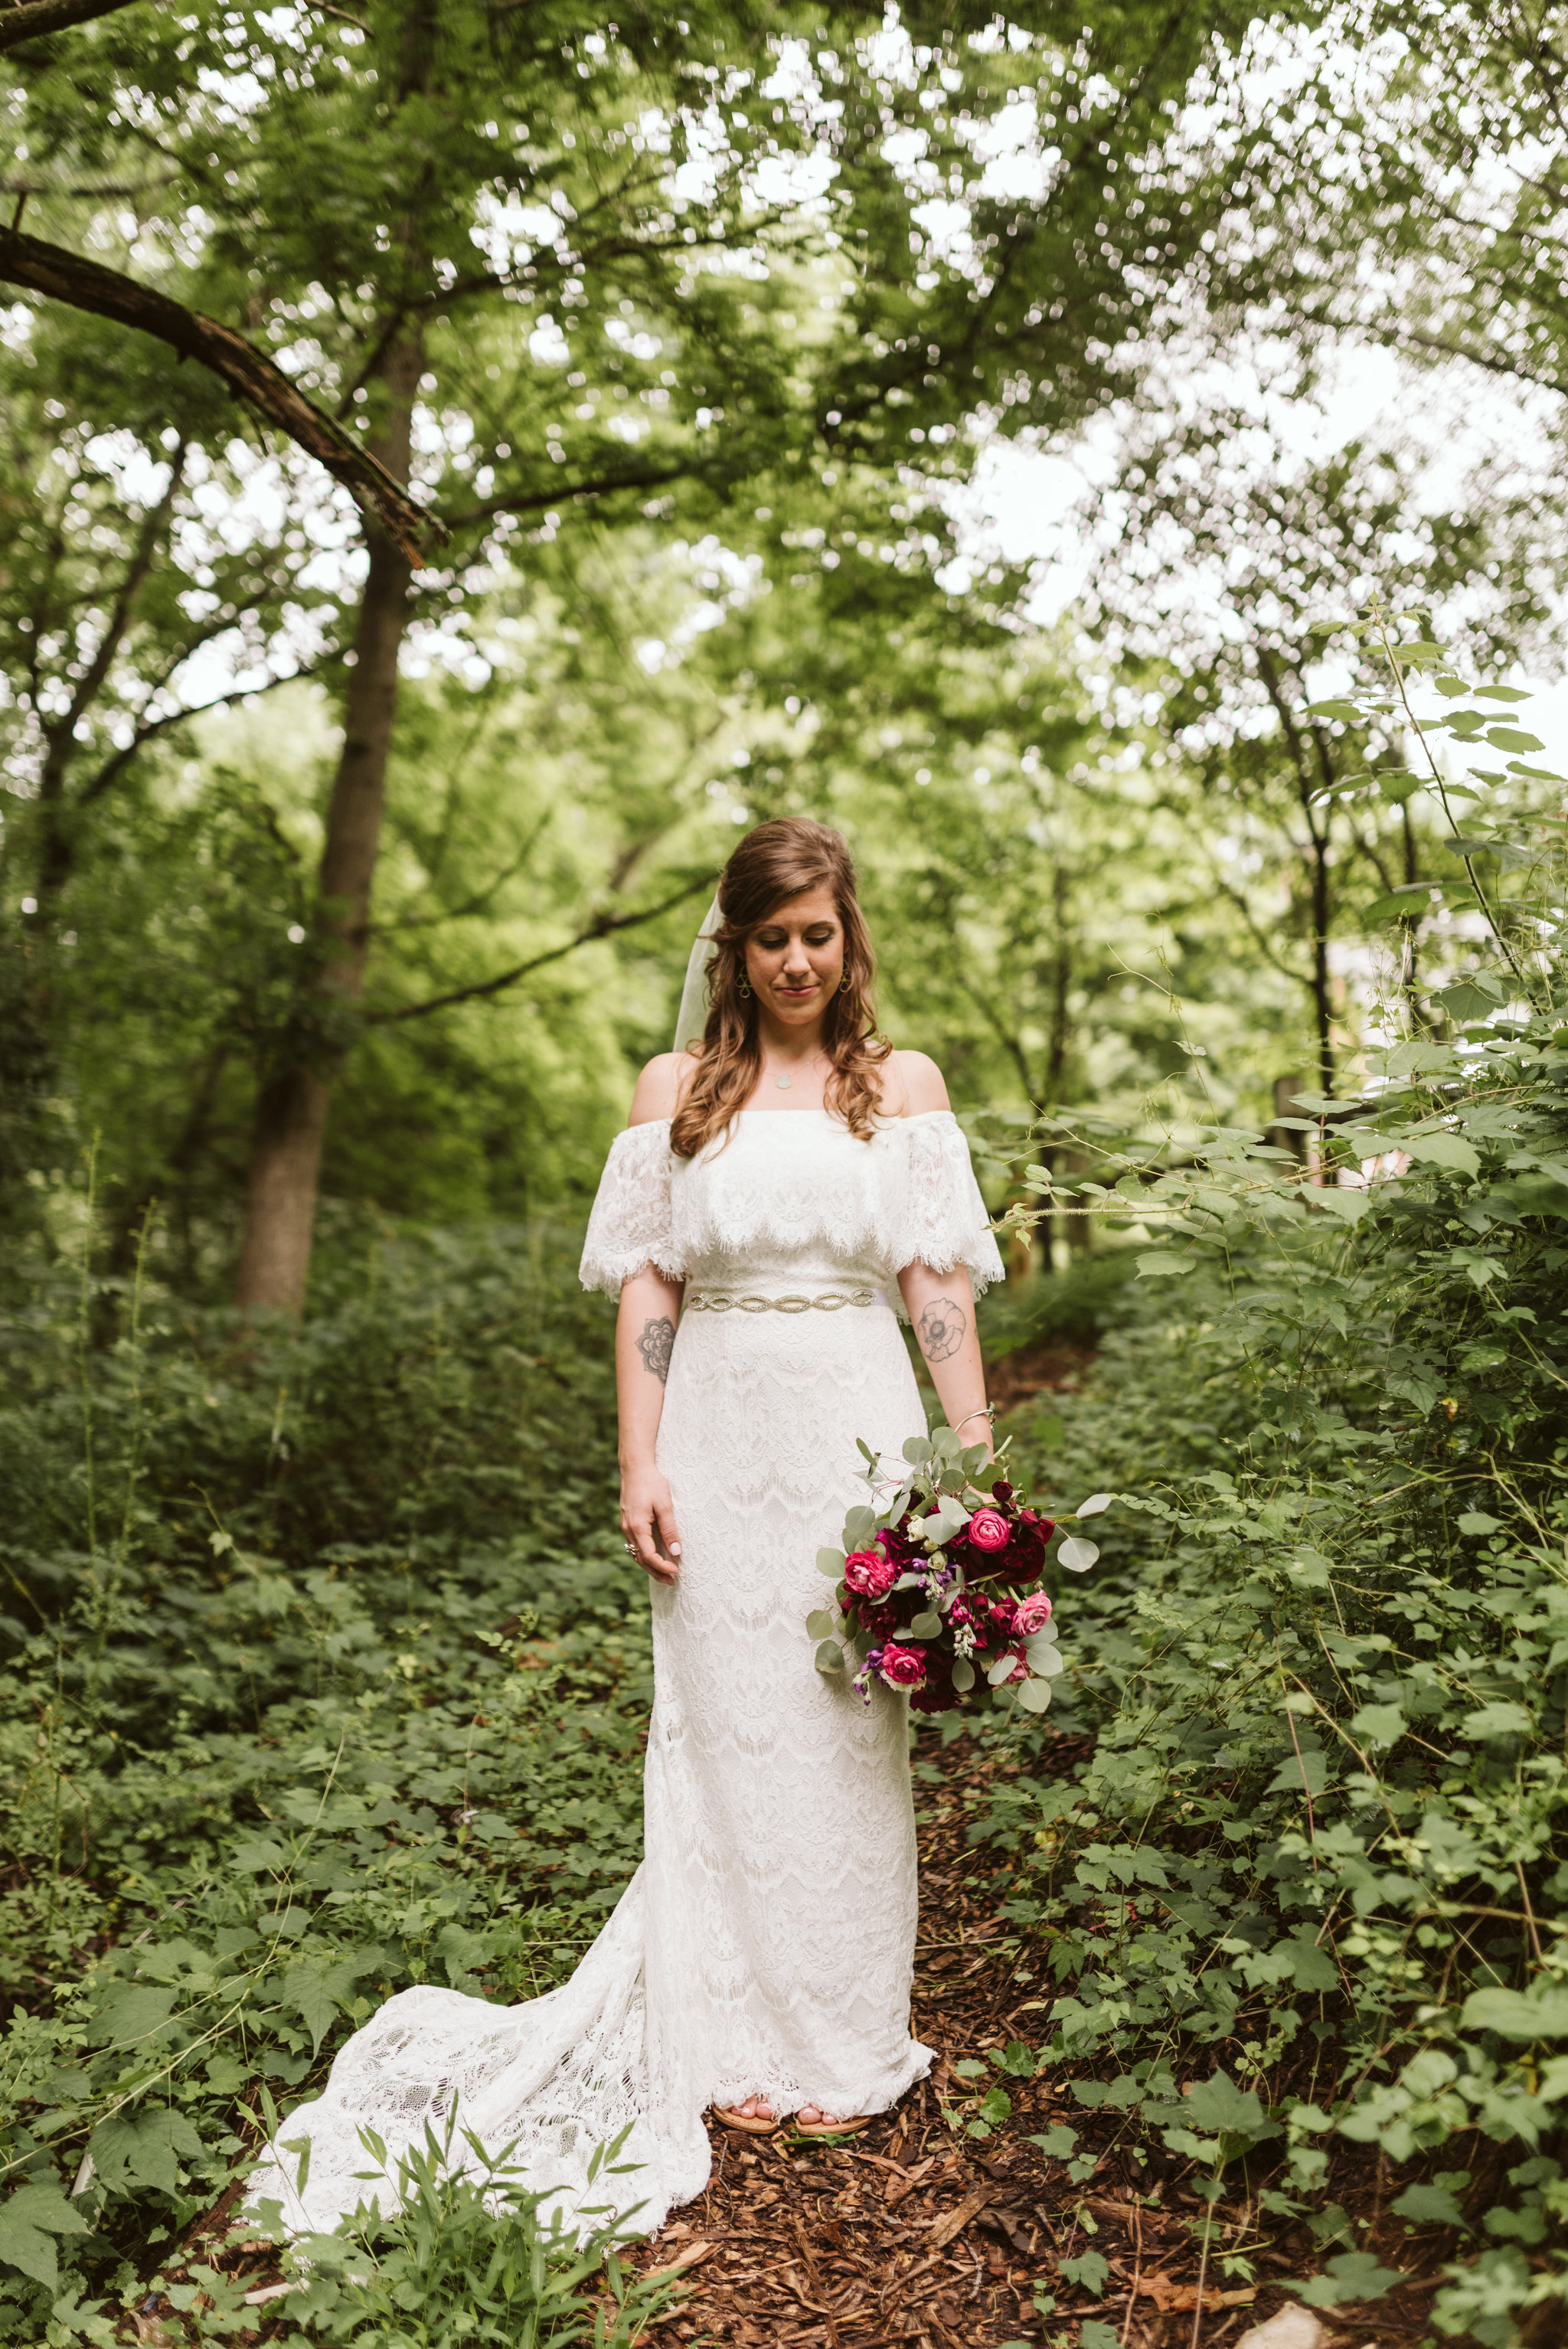 Annapolis, Quaker Wedding, Maryland Wedding Photographer, Intimate, Small Wedding, Vintage, DIY, Portrait of Bride Standing in the Woods, Lace Wedding Dress, Peonies and Eucalyptus